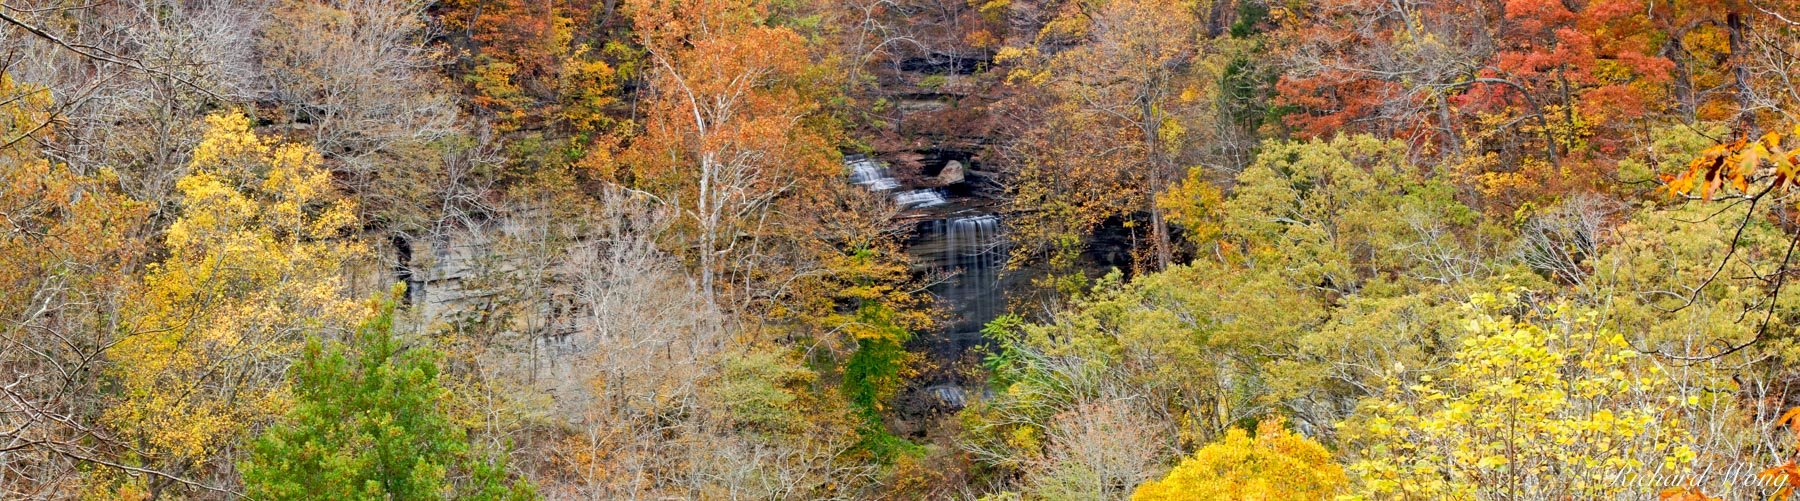 Big Clifty Falls, Clifty Falls State Park, Indiana, Madison, Ohio River Valley, U.S., U.S.A., autumn leaves, beauty, canyon, canyons, clifty creek, colors, creeks, evolution, fall foliage, geology, gl, photo